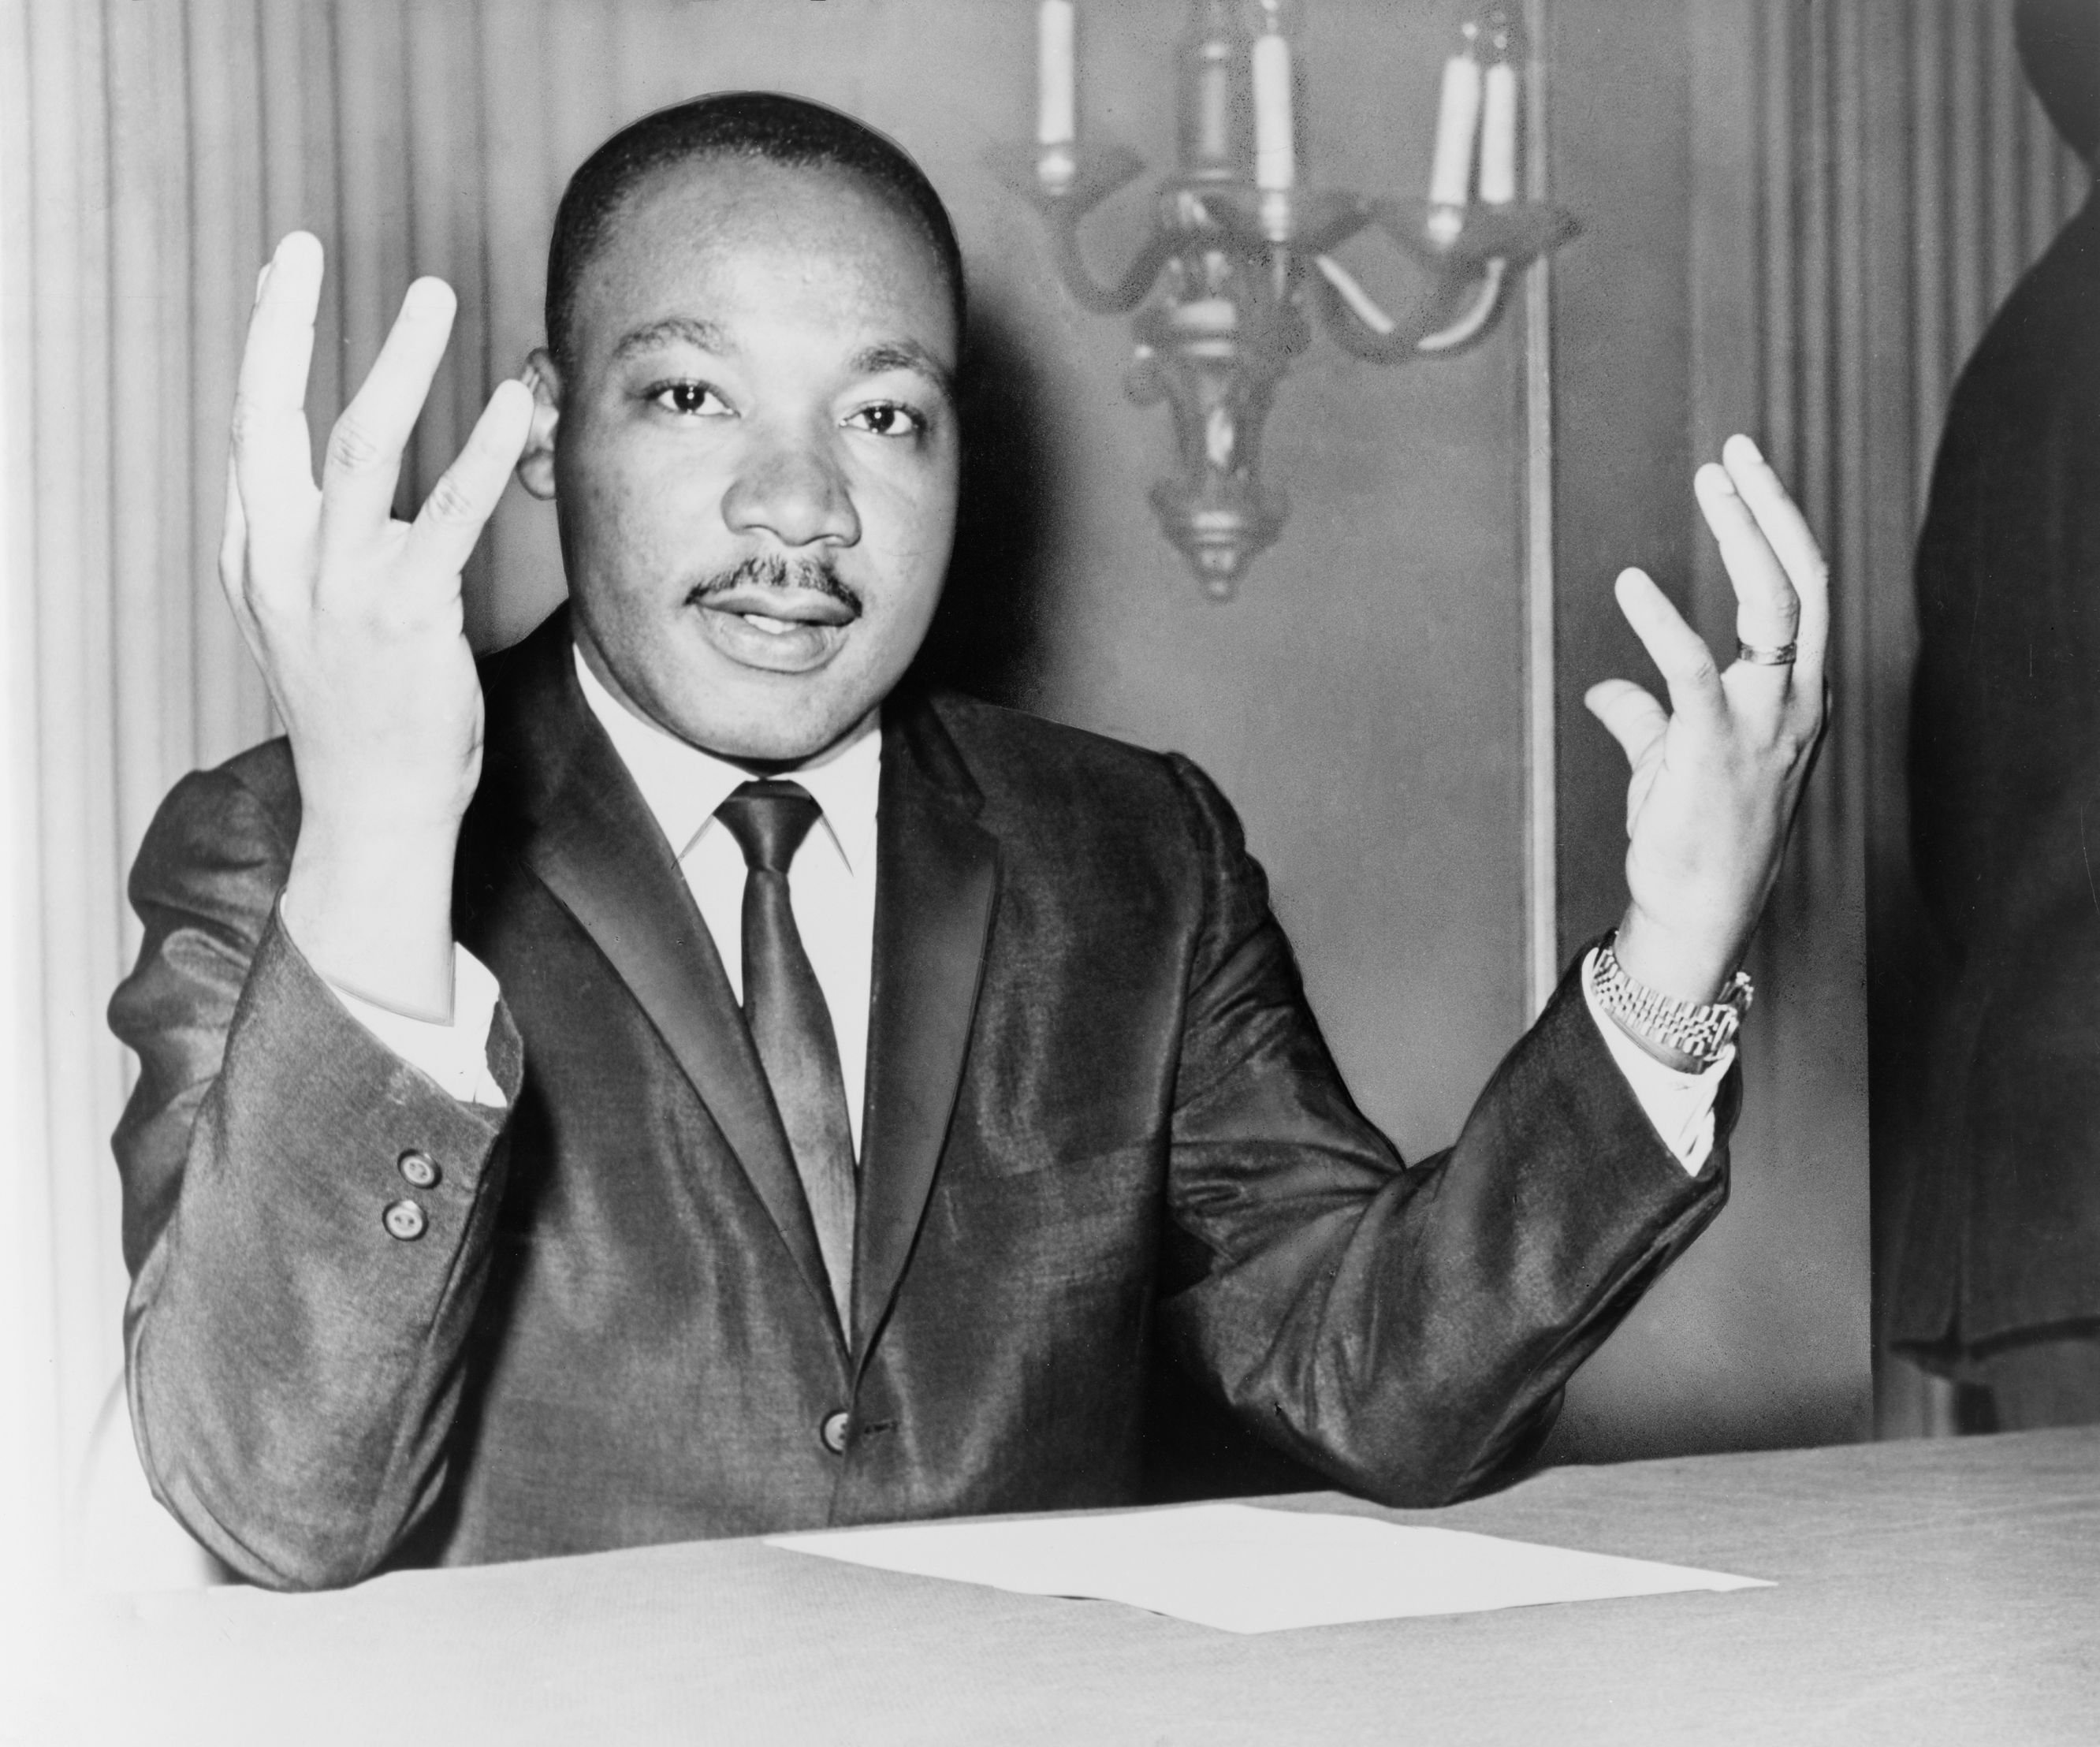 martin luther king - photo #18